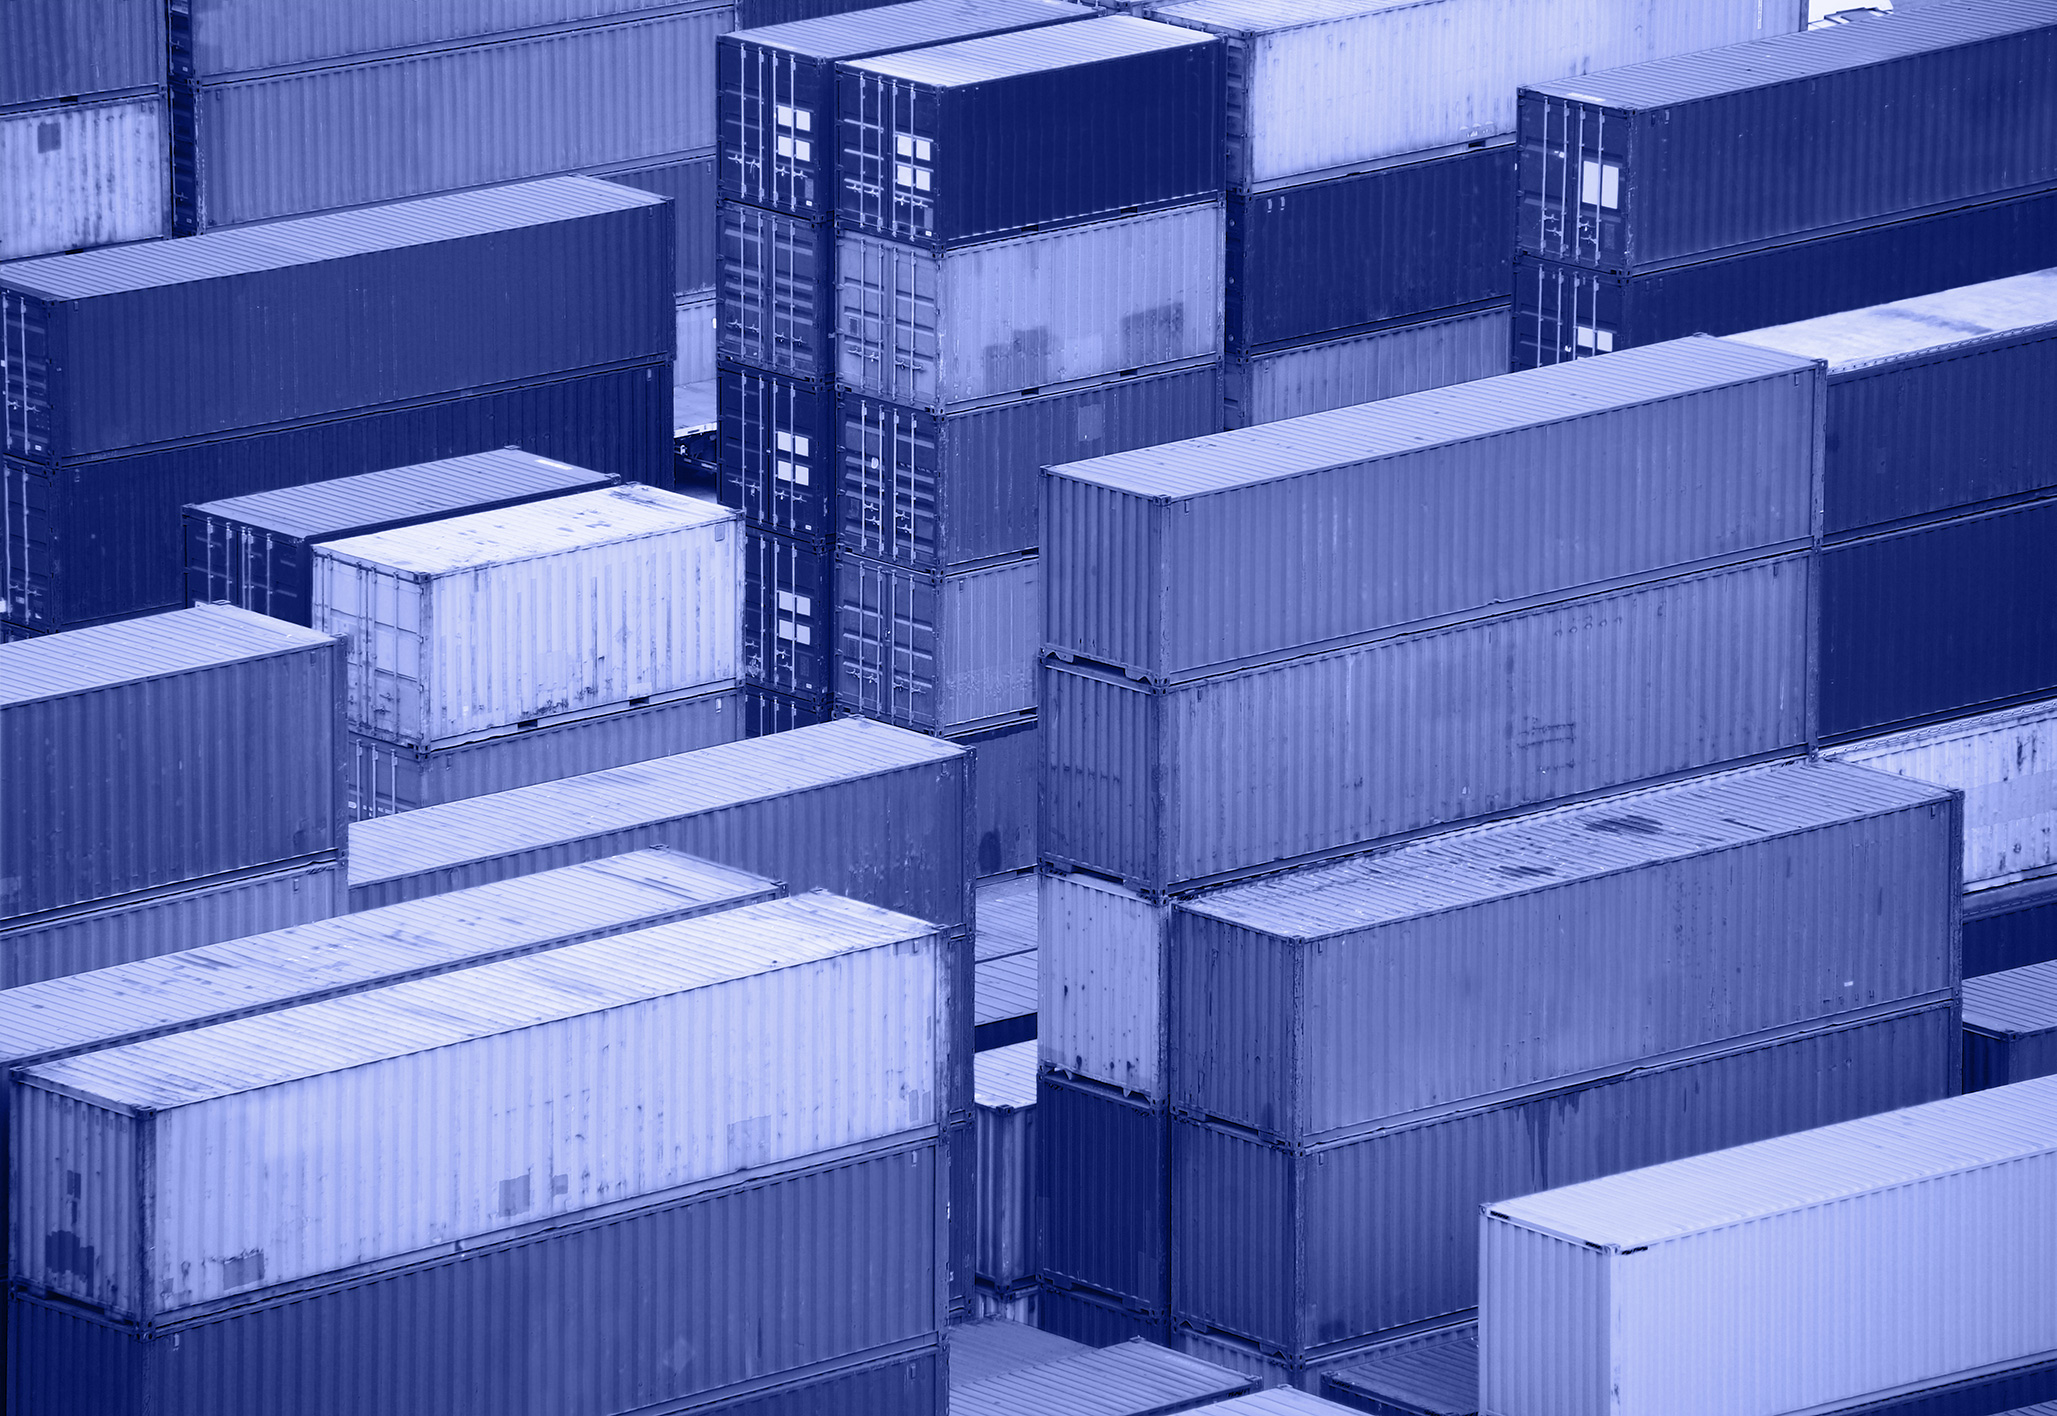 autepra-containers-perspective.jpg